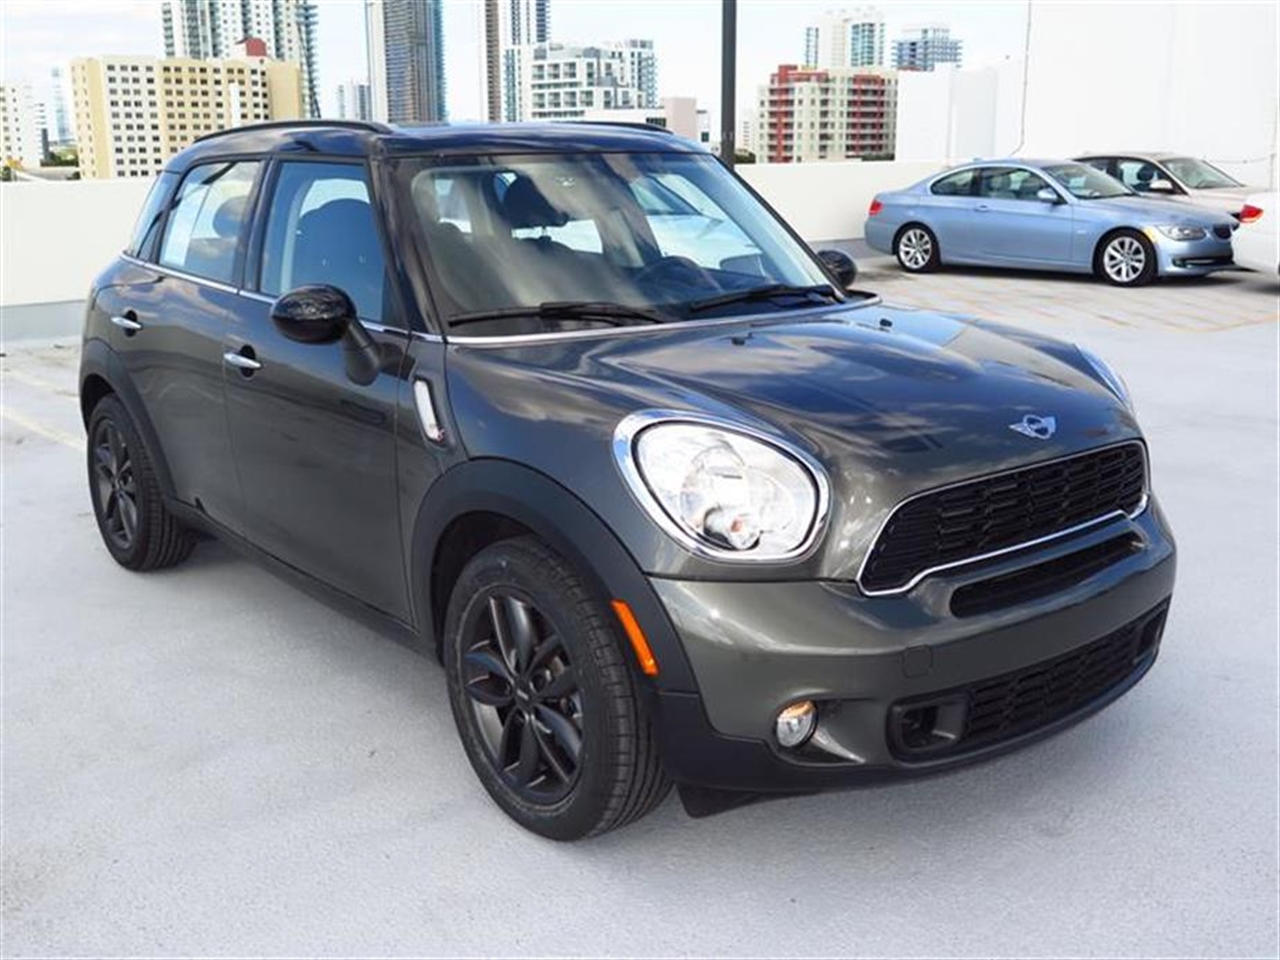 2014 MINI COOPER S COUNTRYMAN FWD 4dr S 14808 miles 2 Seatback Storage Pockets 3 12V DC Power Out